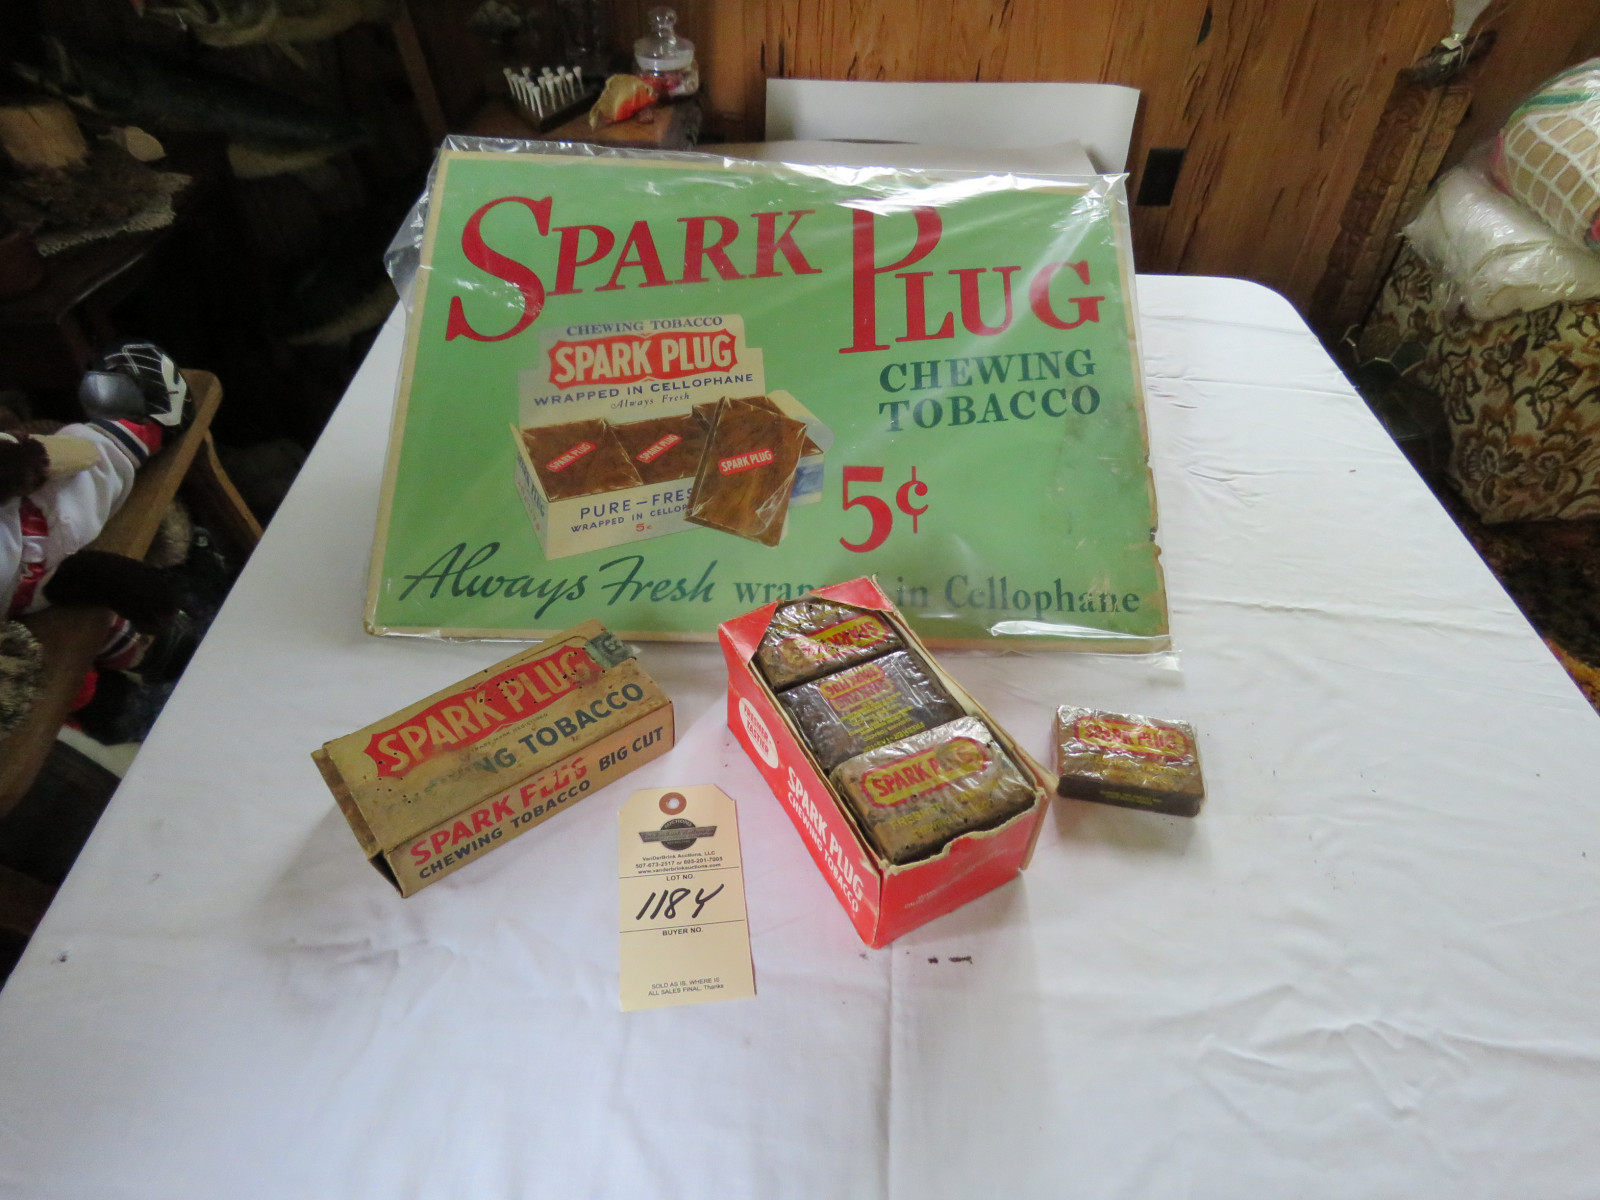 Vintage Spark Plug Chewing Tobacco Display with original Chewing Tobacco - Image 1